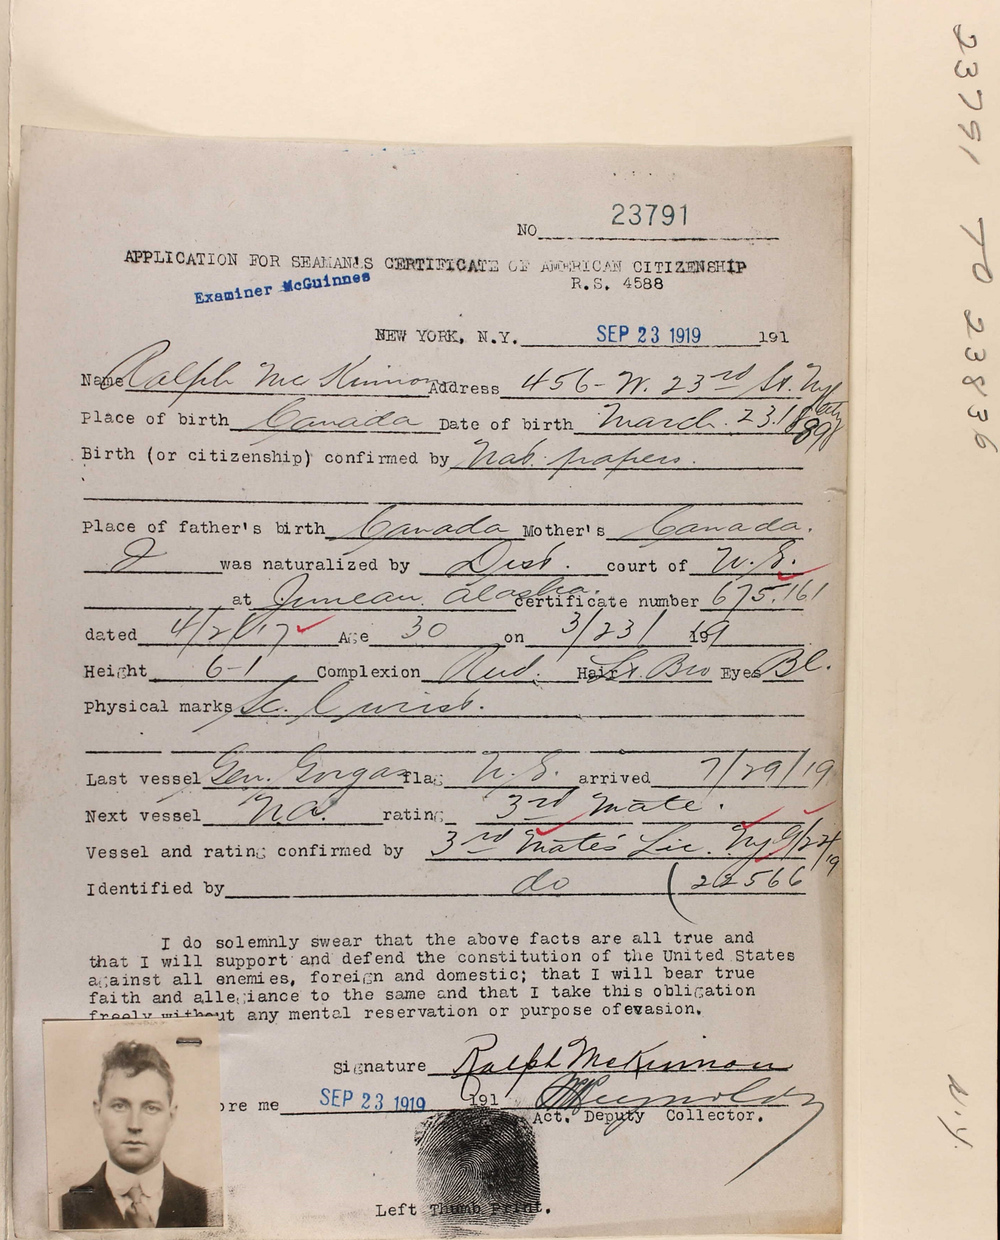 Seaman License 23 Sep 1919 for Ralph McKinnon